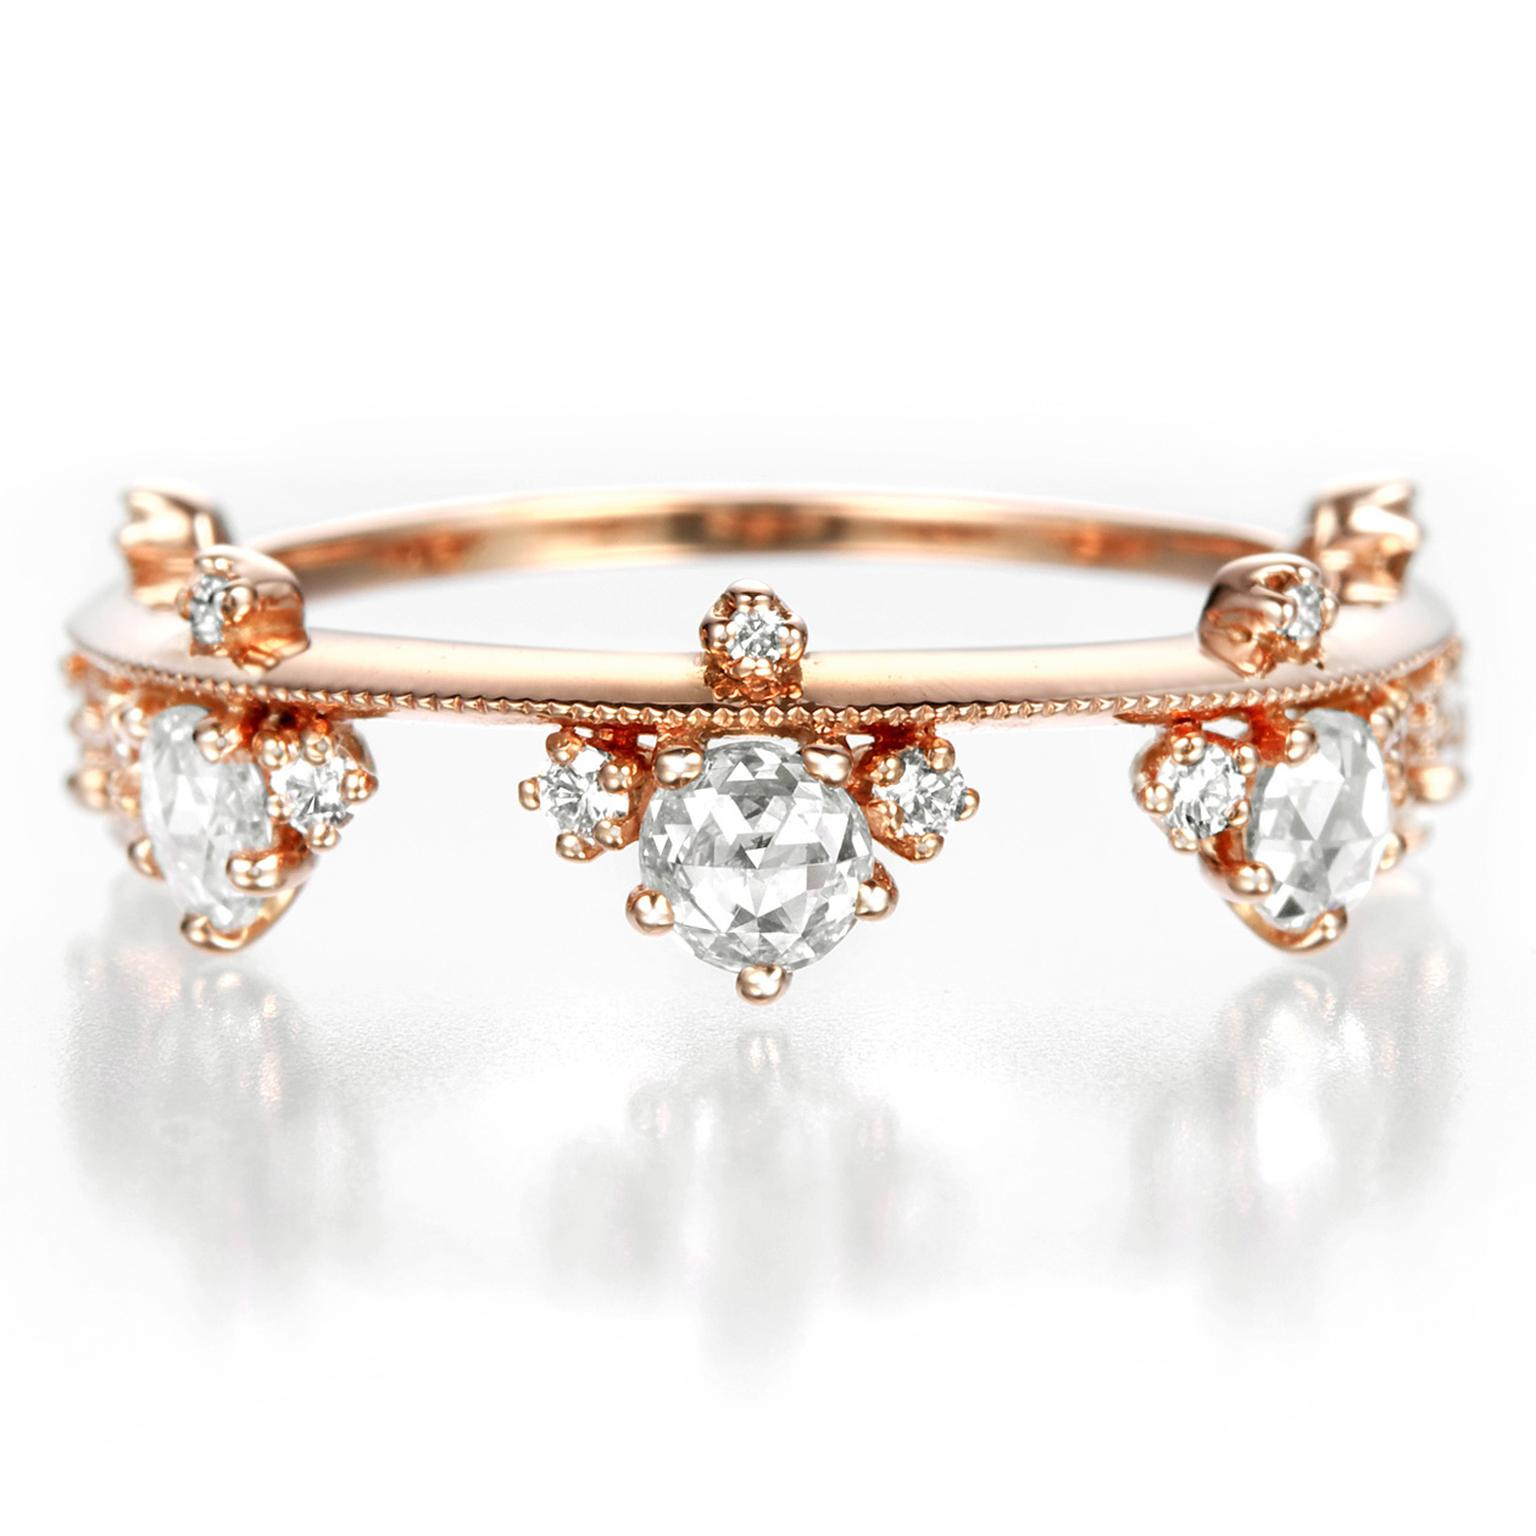 Kataoka Diamond Crown engagement ring